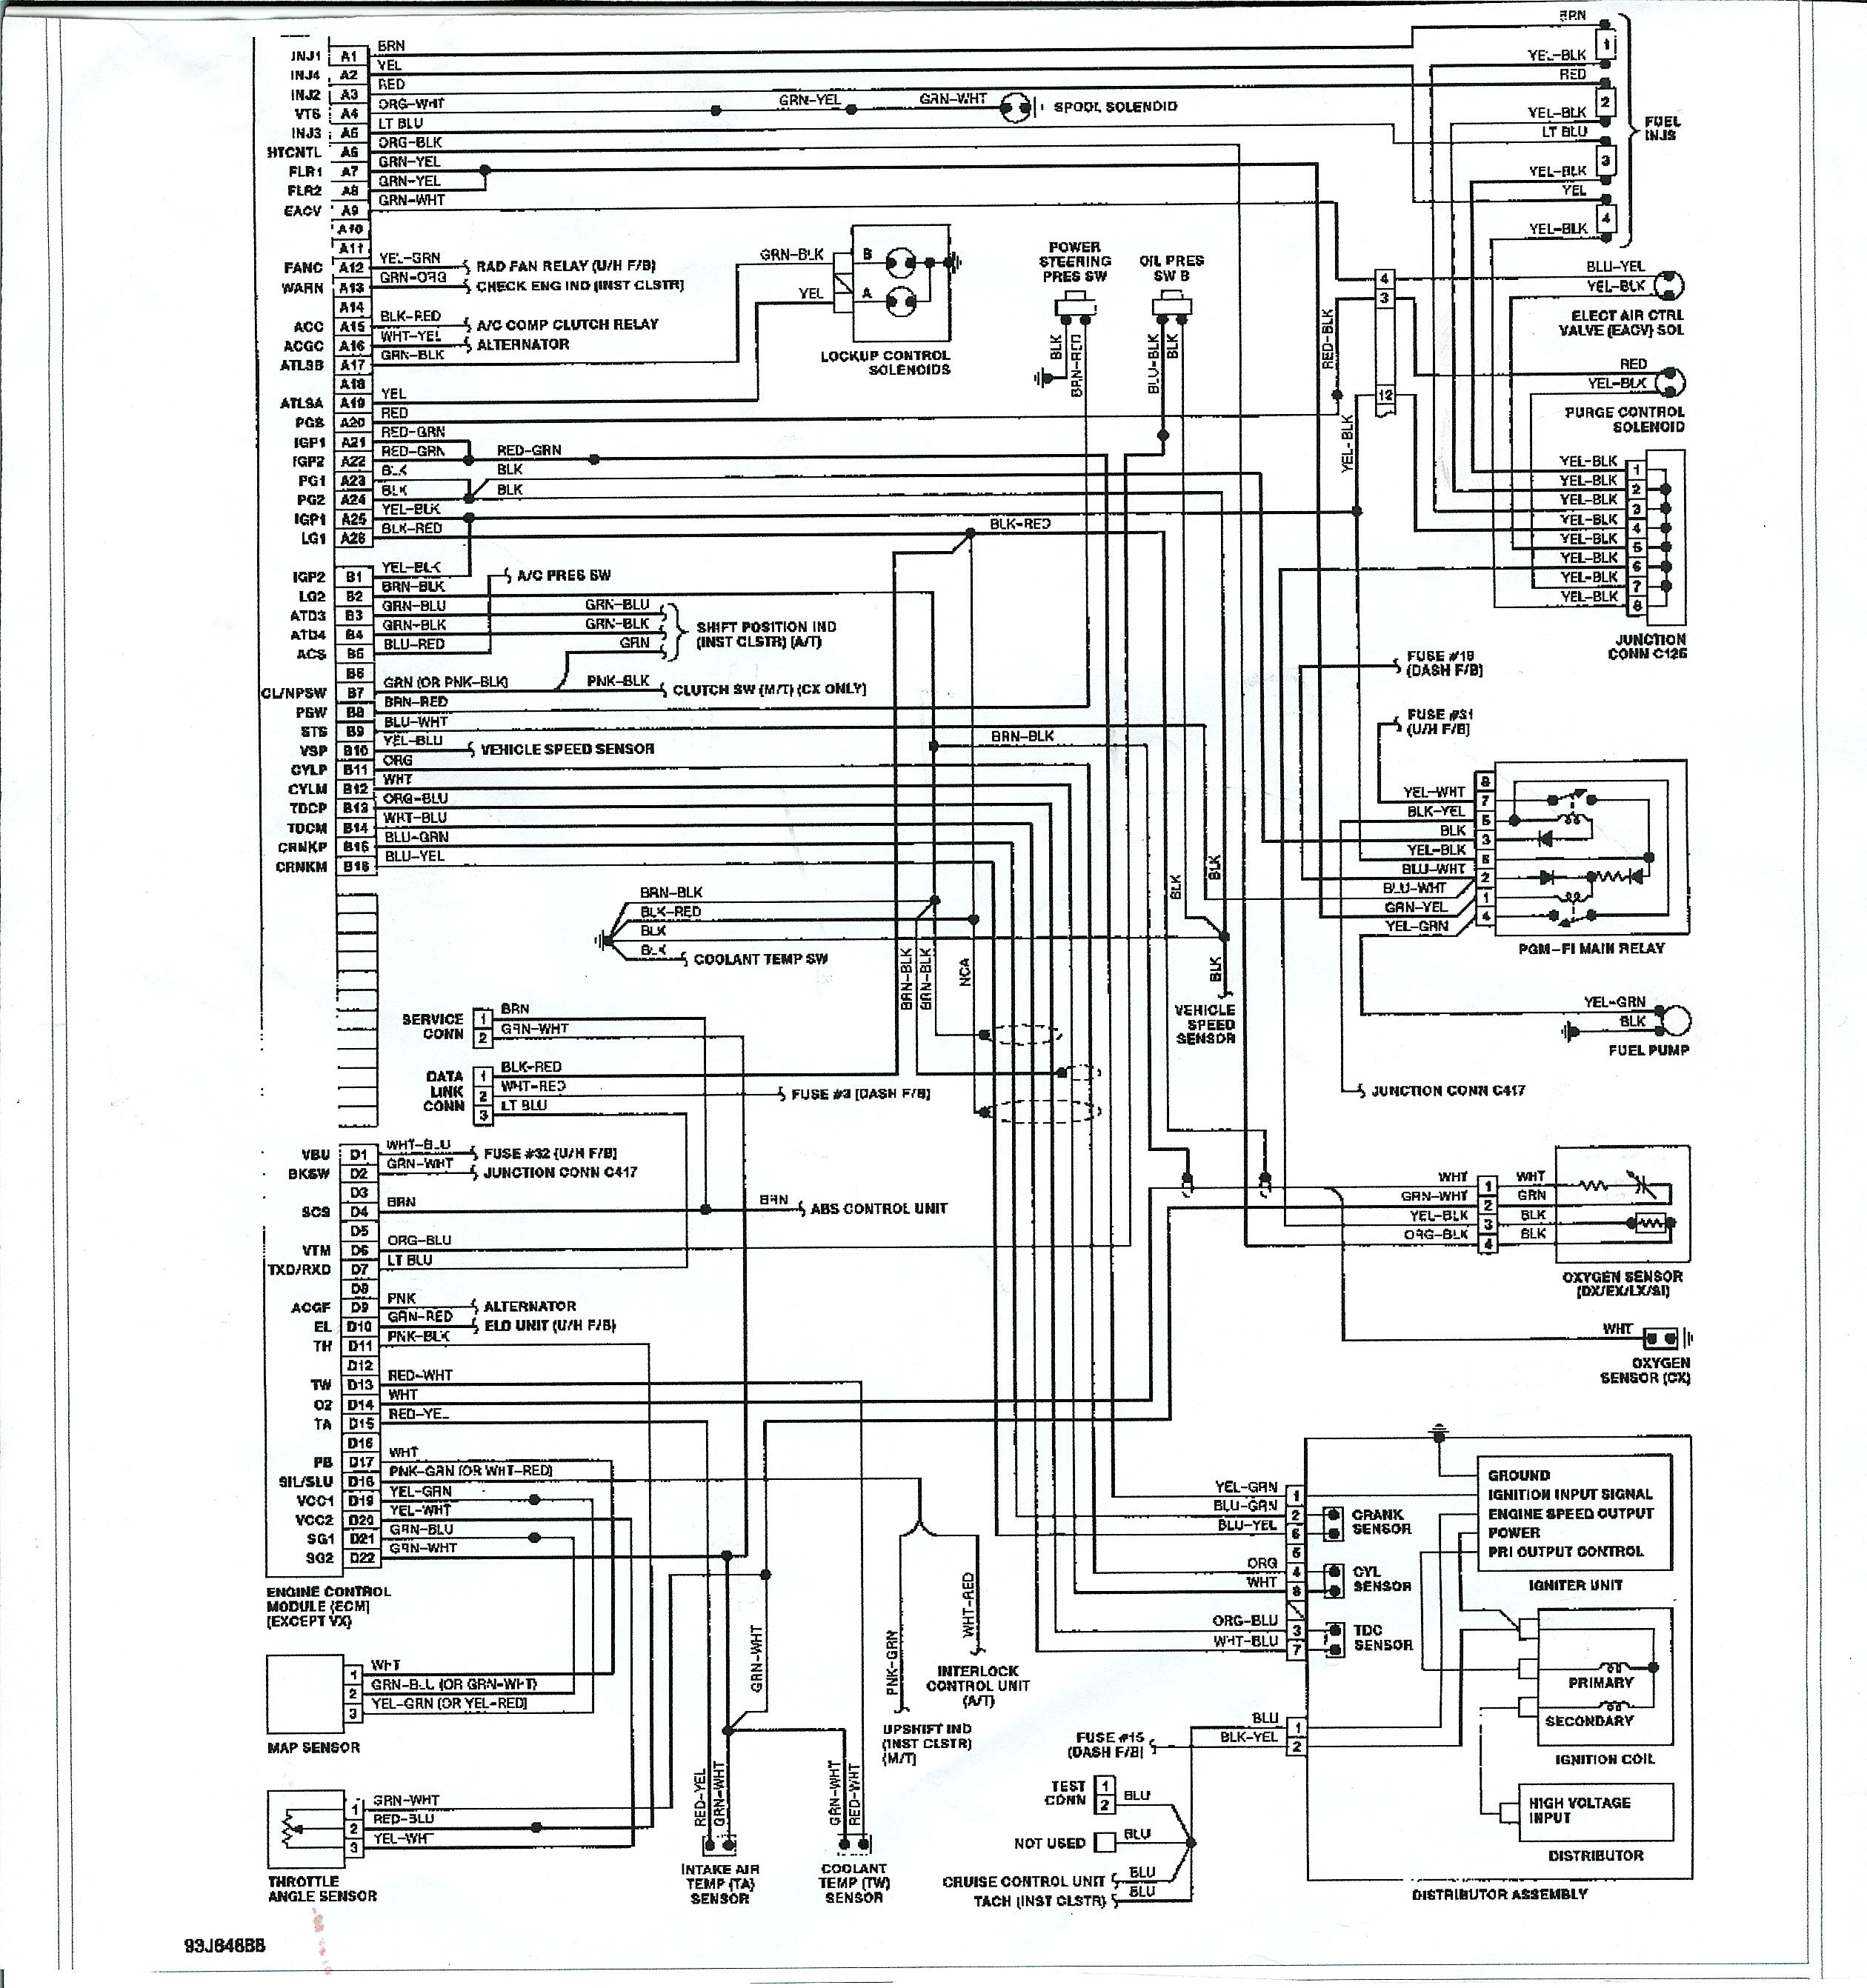 Honda Car Stereo Wiring Diagram